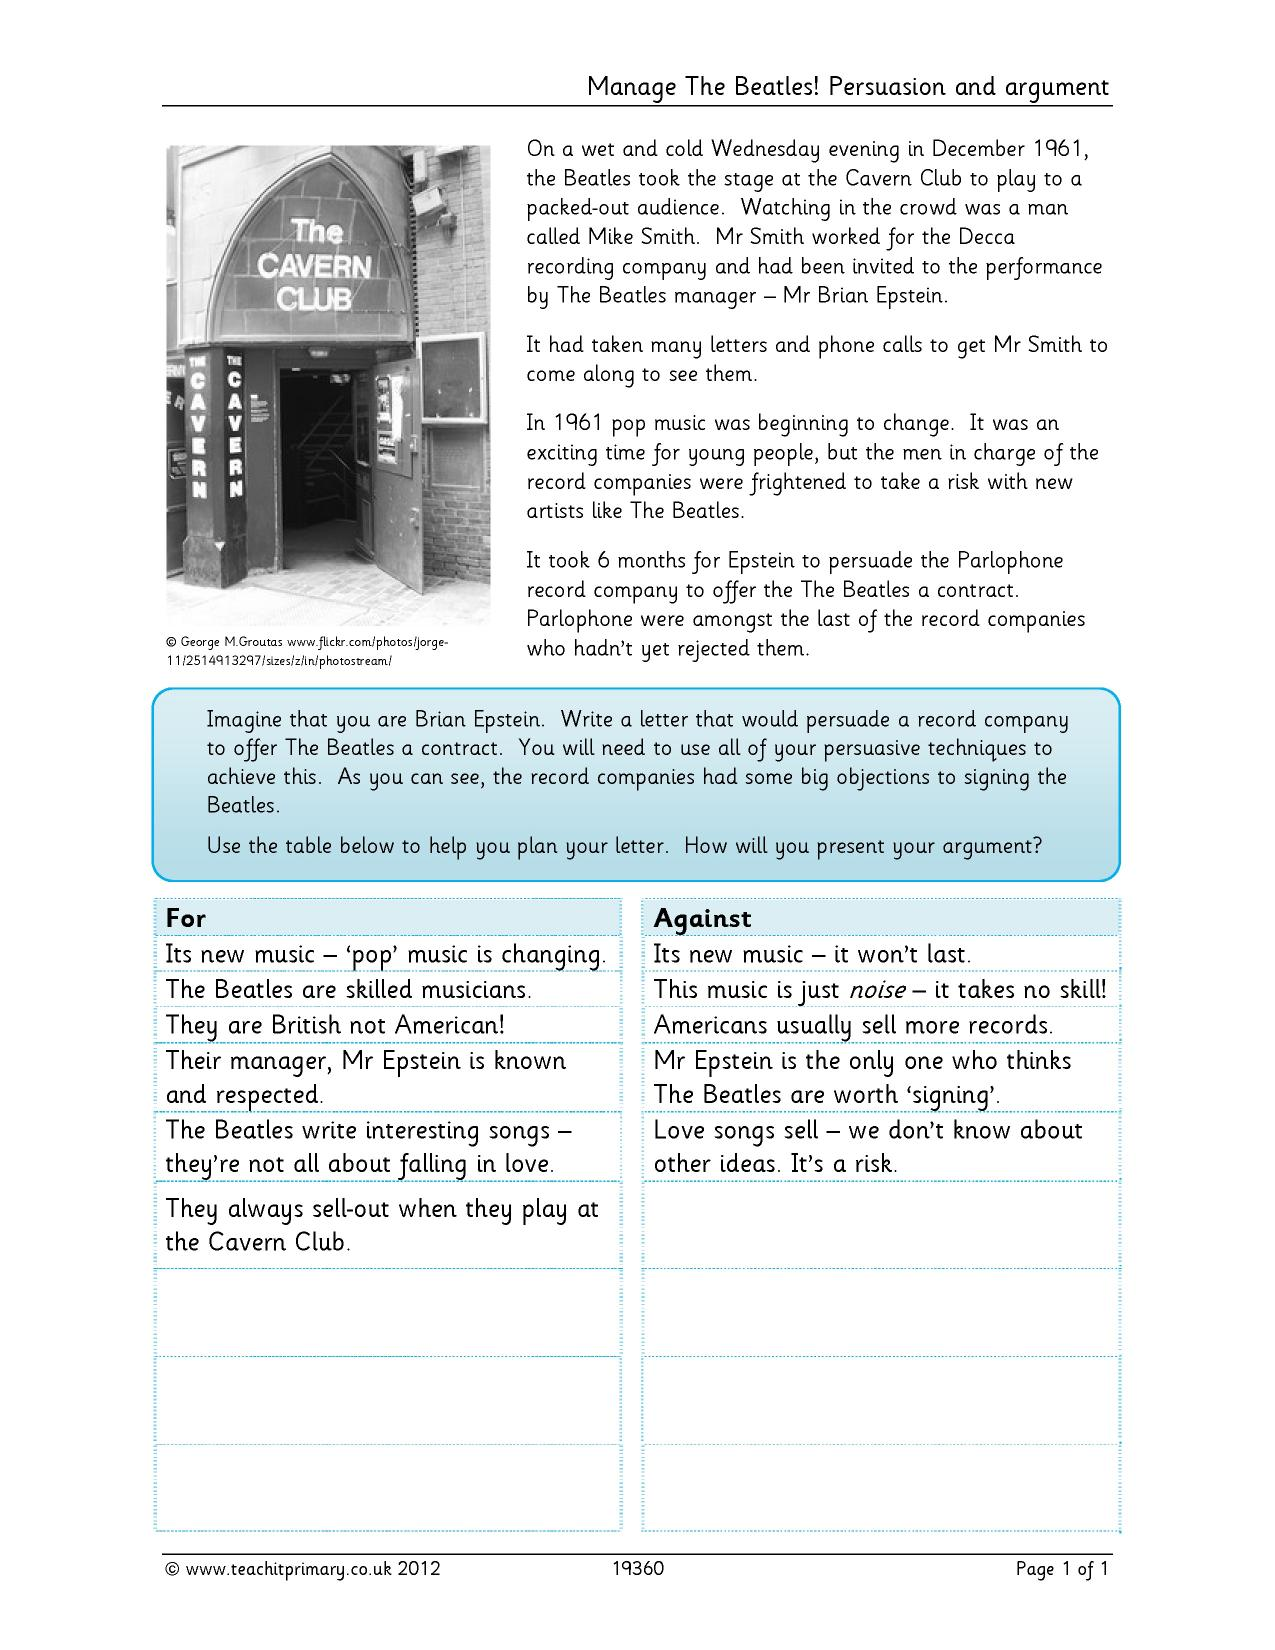 Eyfs ks1 ks2 persuasive writing teachit primary 2 preview spiritdancerdesigns Images